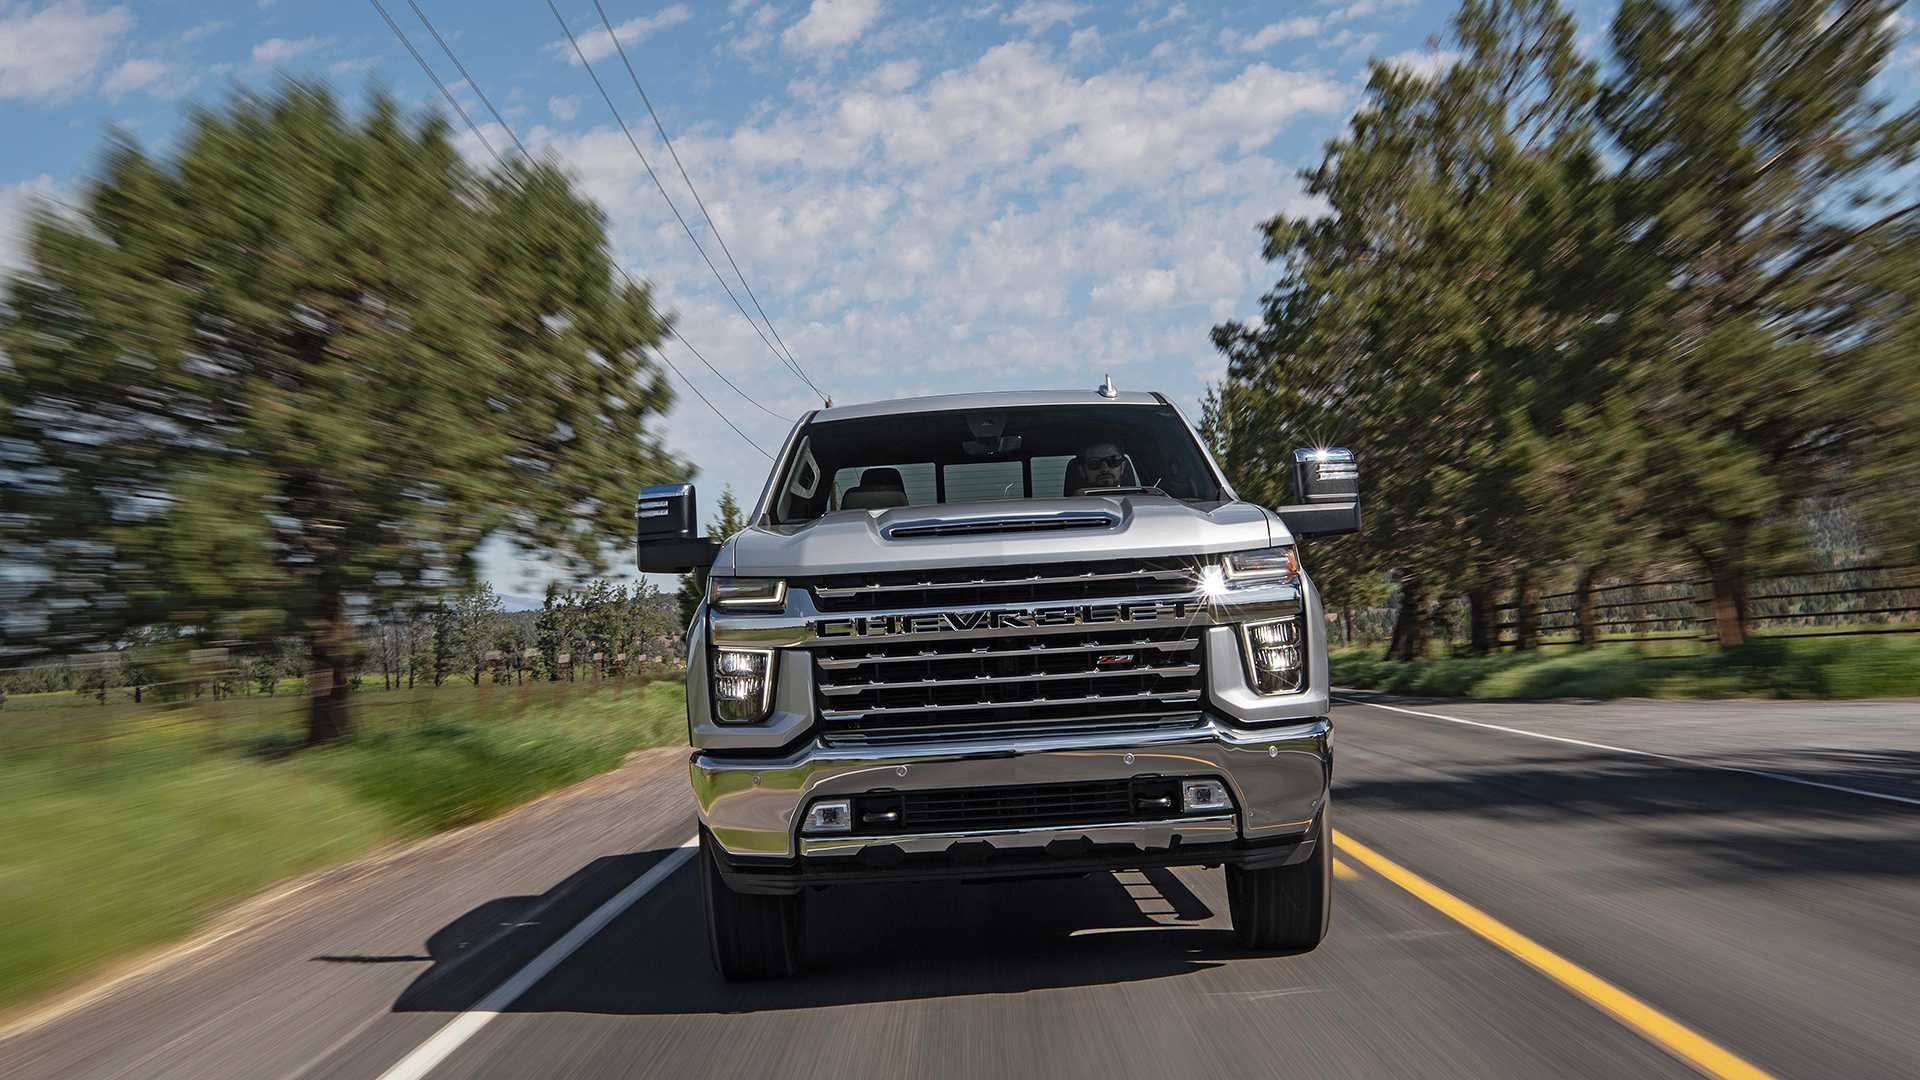 The Most Expensive 2020 Chevy Silverado HD Costs $80,890